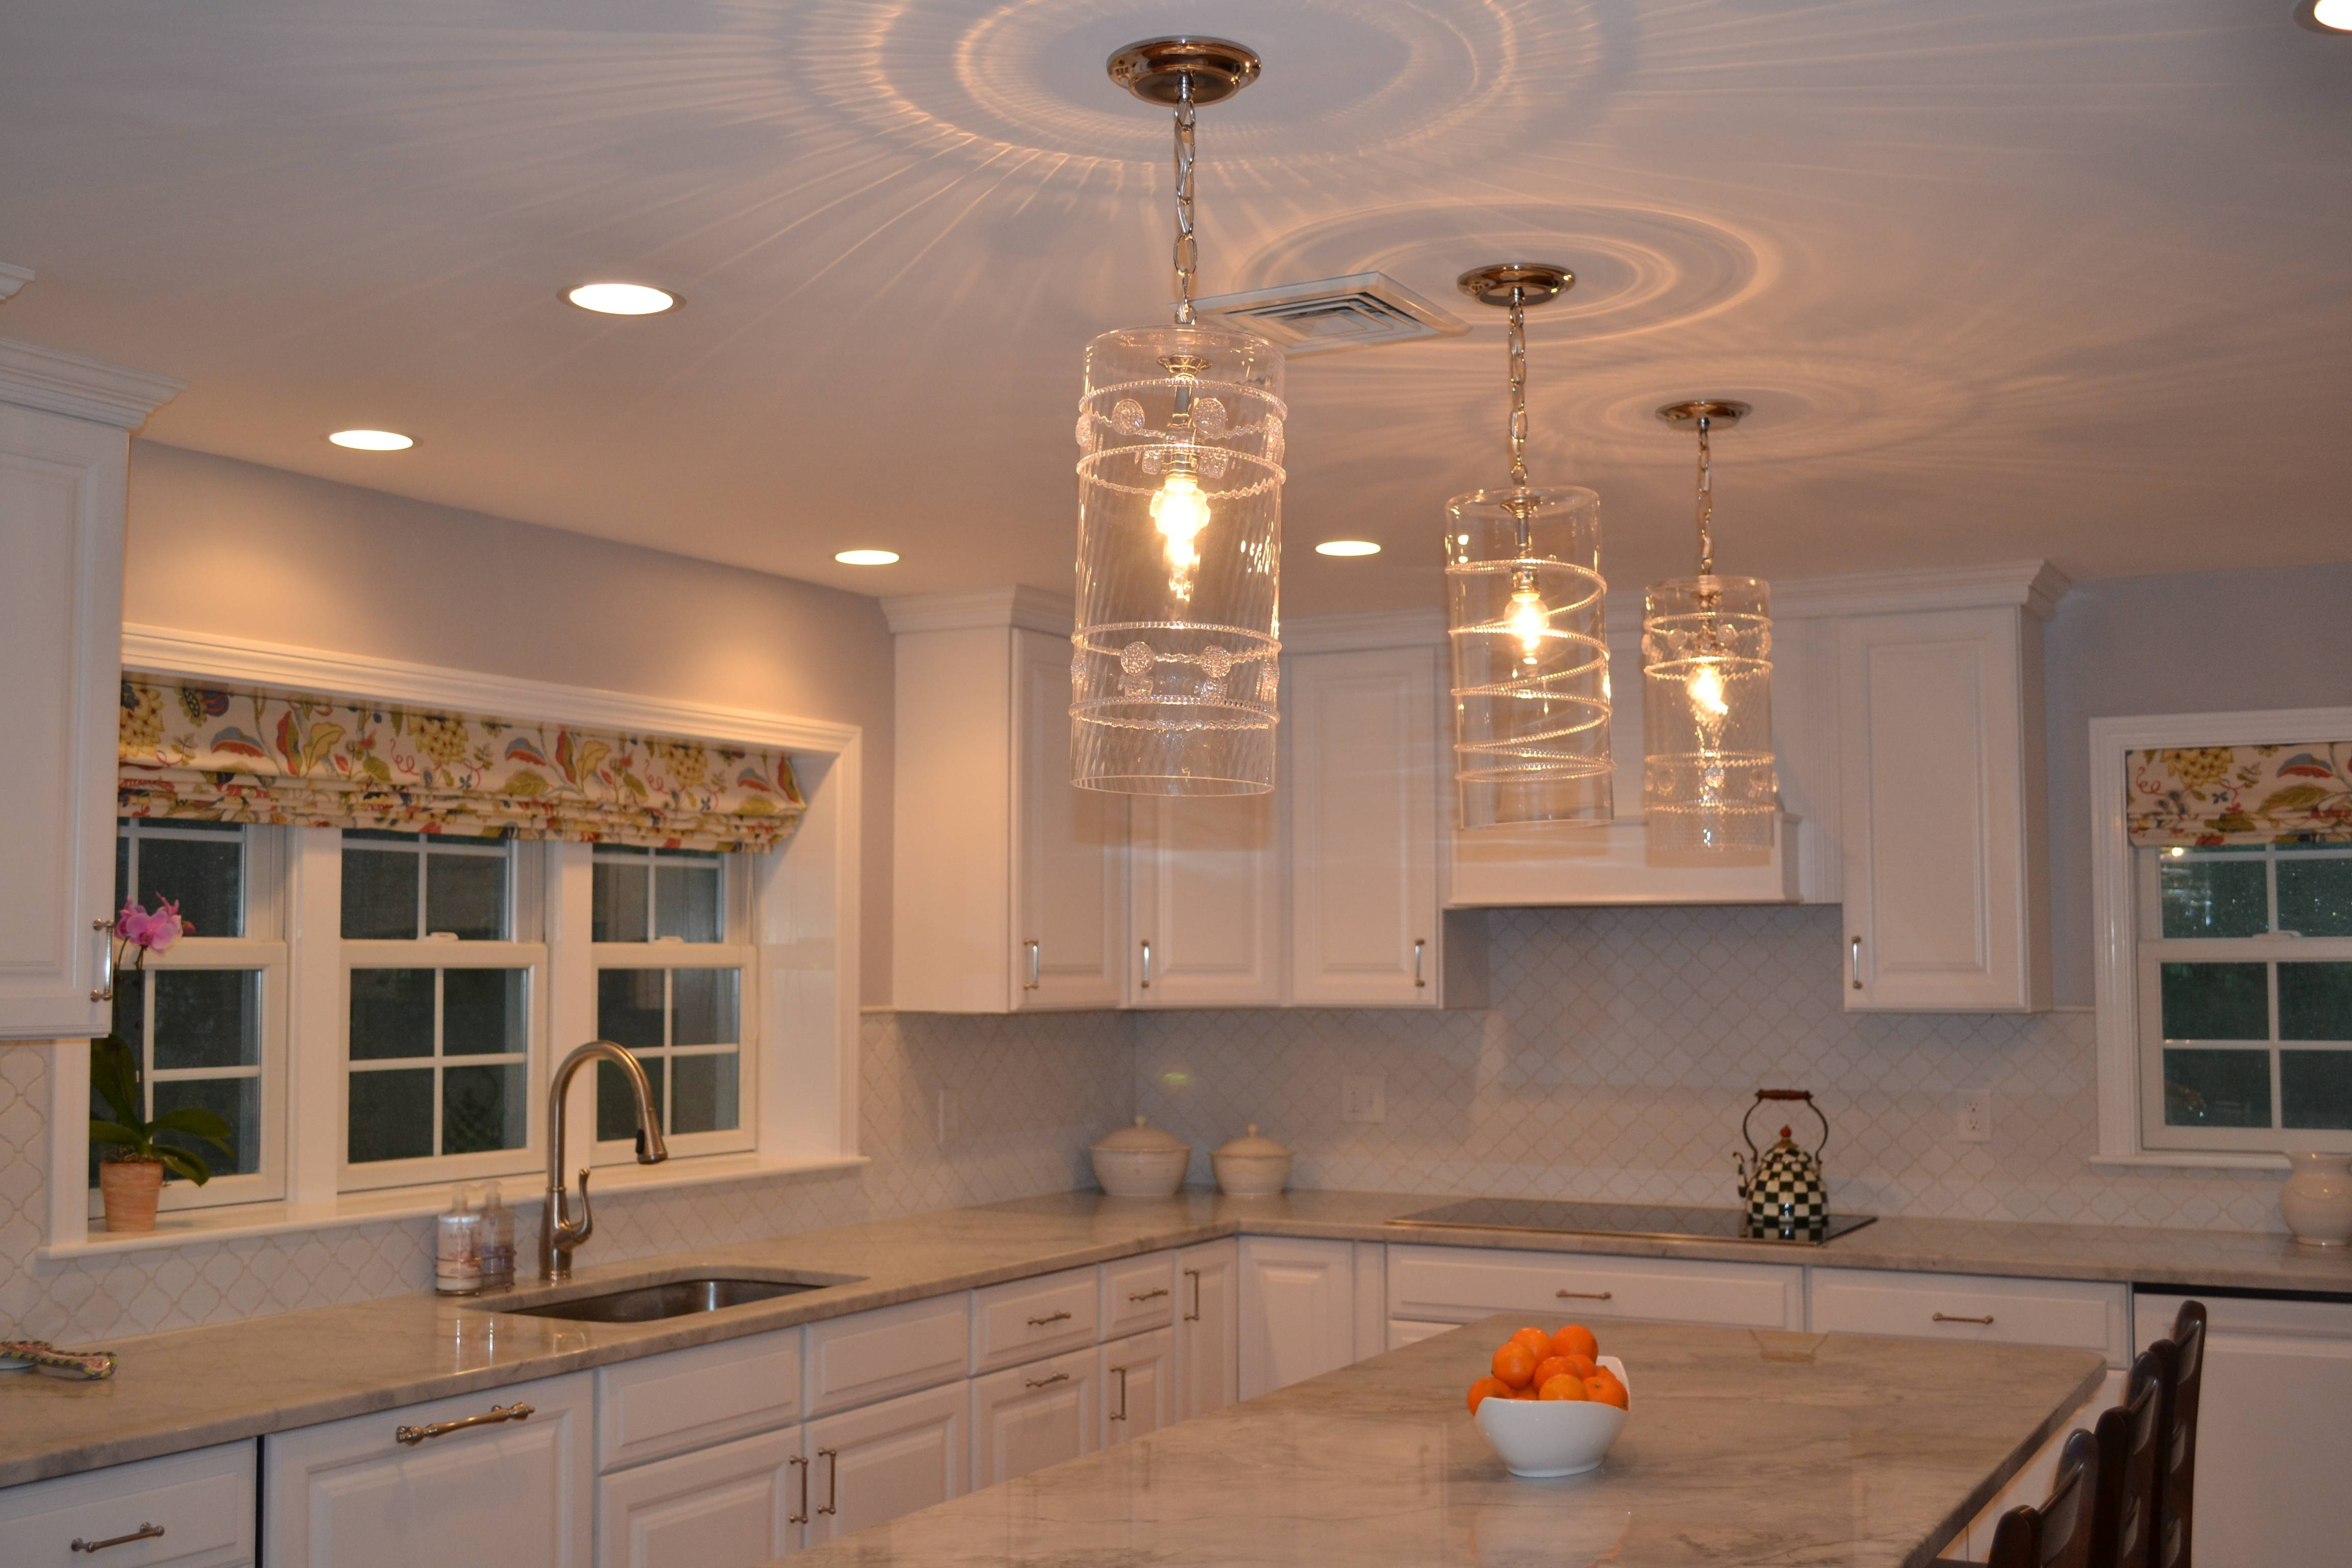 Kitchen Ideas: Clear Glass Pendant Light Lights Above Island 3 Within 3 Pendant Lights For Kitchen Island (View 8 of 15)